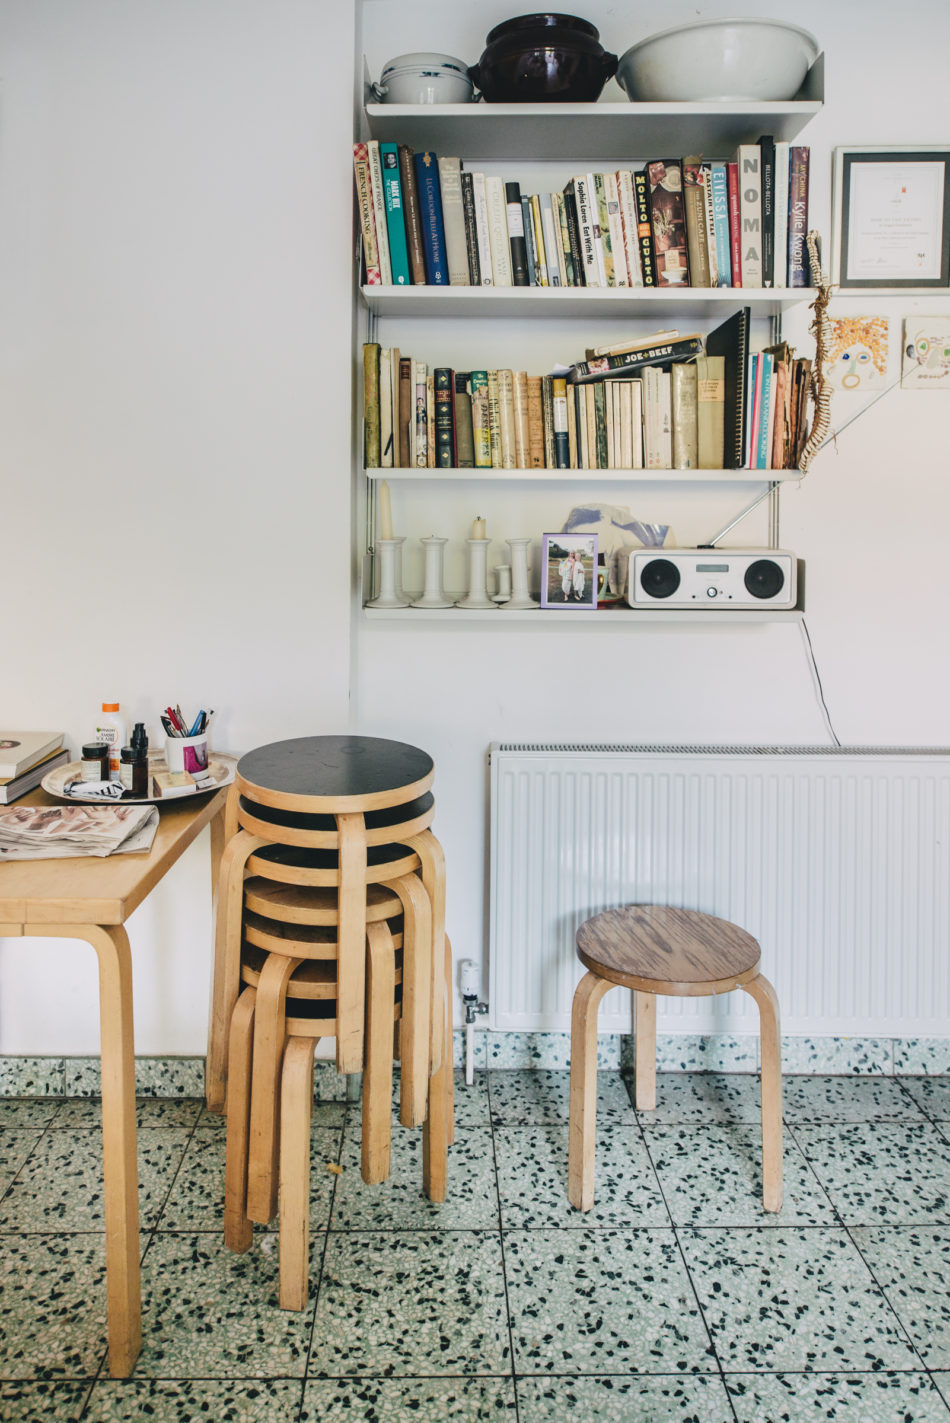 aalto stools in the kitchen